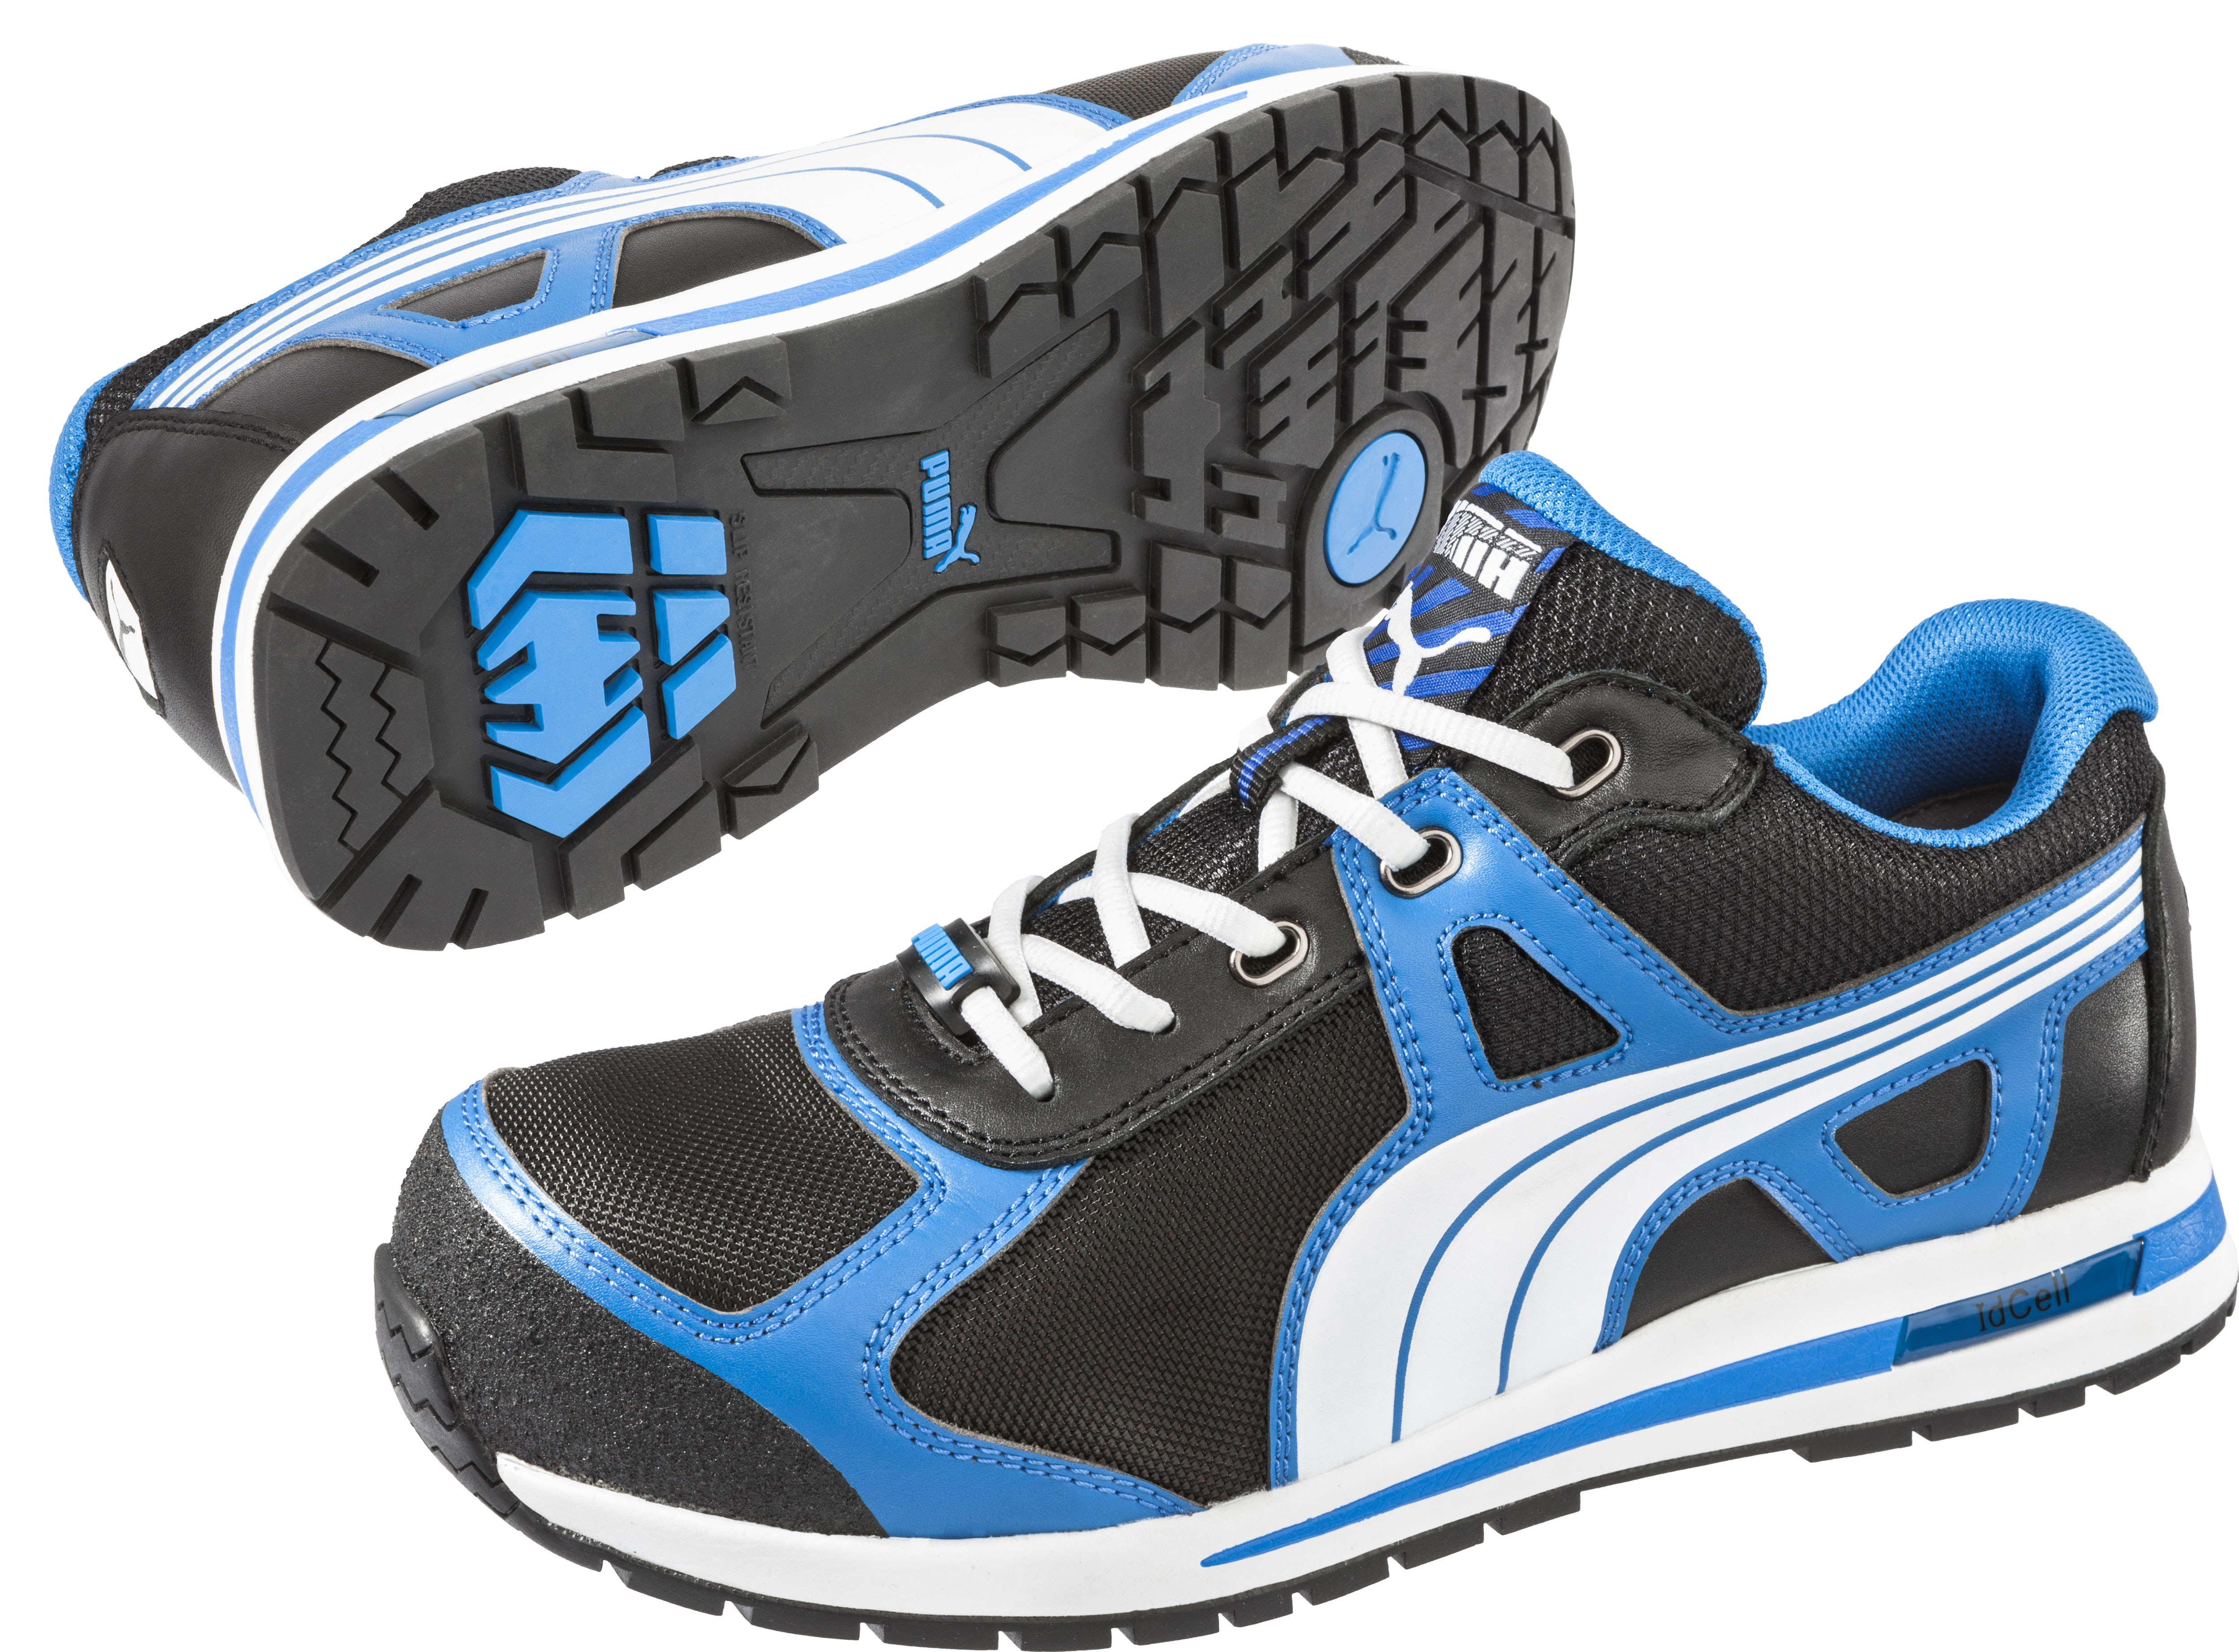 Puma AERIAL LOW Microfibre & Textile Upper Trainer Safety Shoes